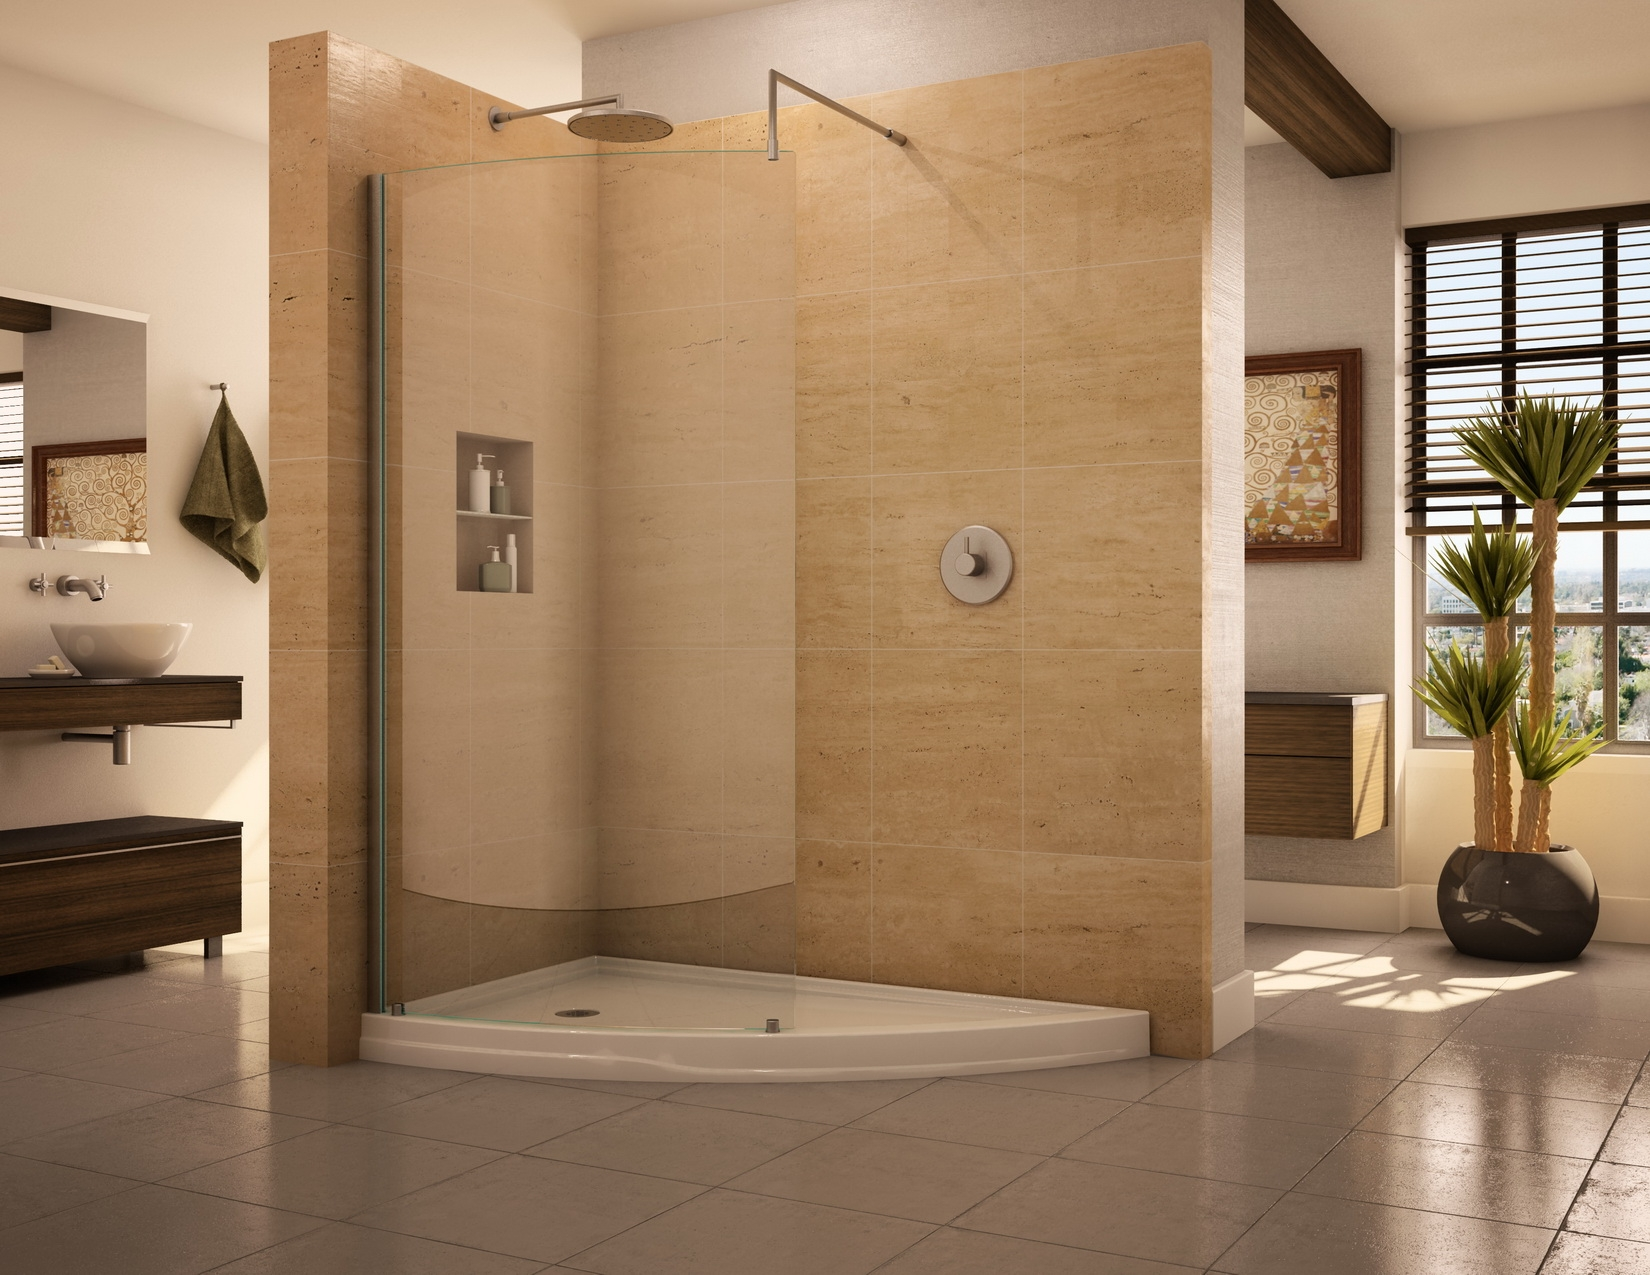 Use Similar But Slightly Different Materials For The Shower